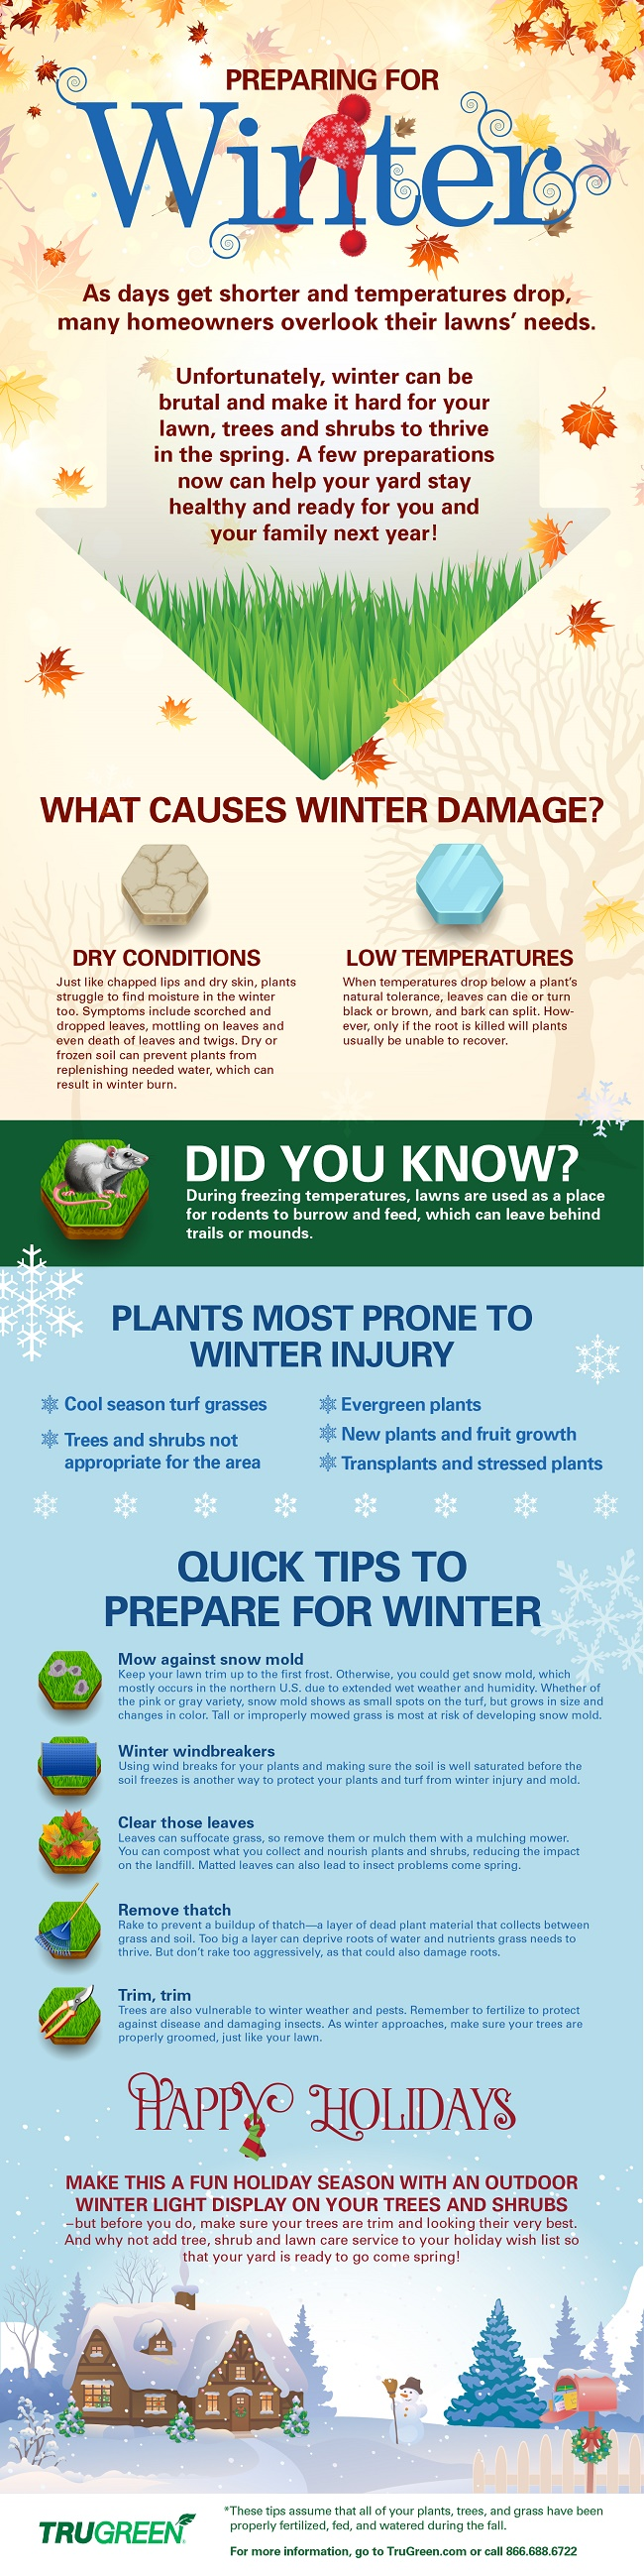 Did you know that you still need to take care of your #lawn in the #winter? Check Out These Winter #LawnCare #Tips From TruGreen + #Infographic #sponsored #MC #TruGreen http://cheapisthenewclassy.com/2014/12/winter-lawn-care-tips.html